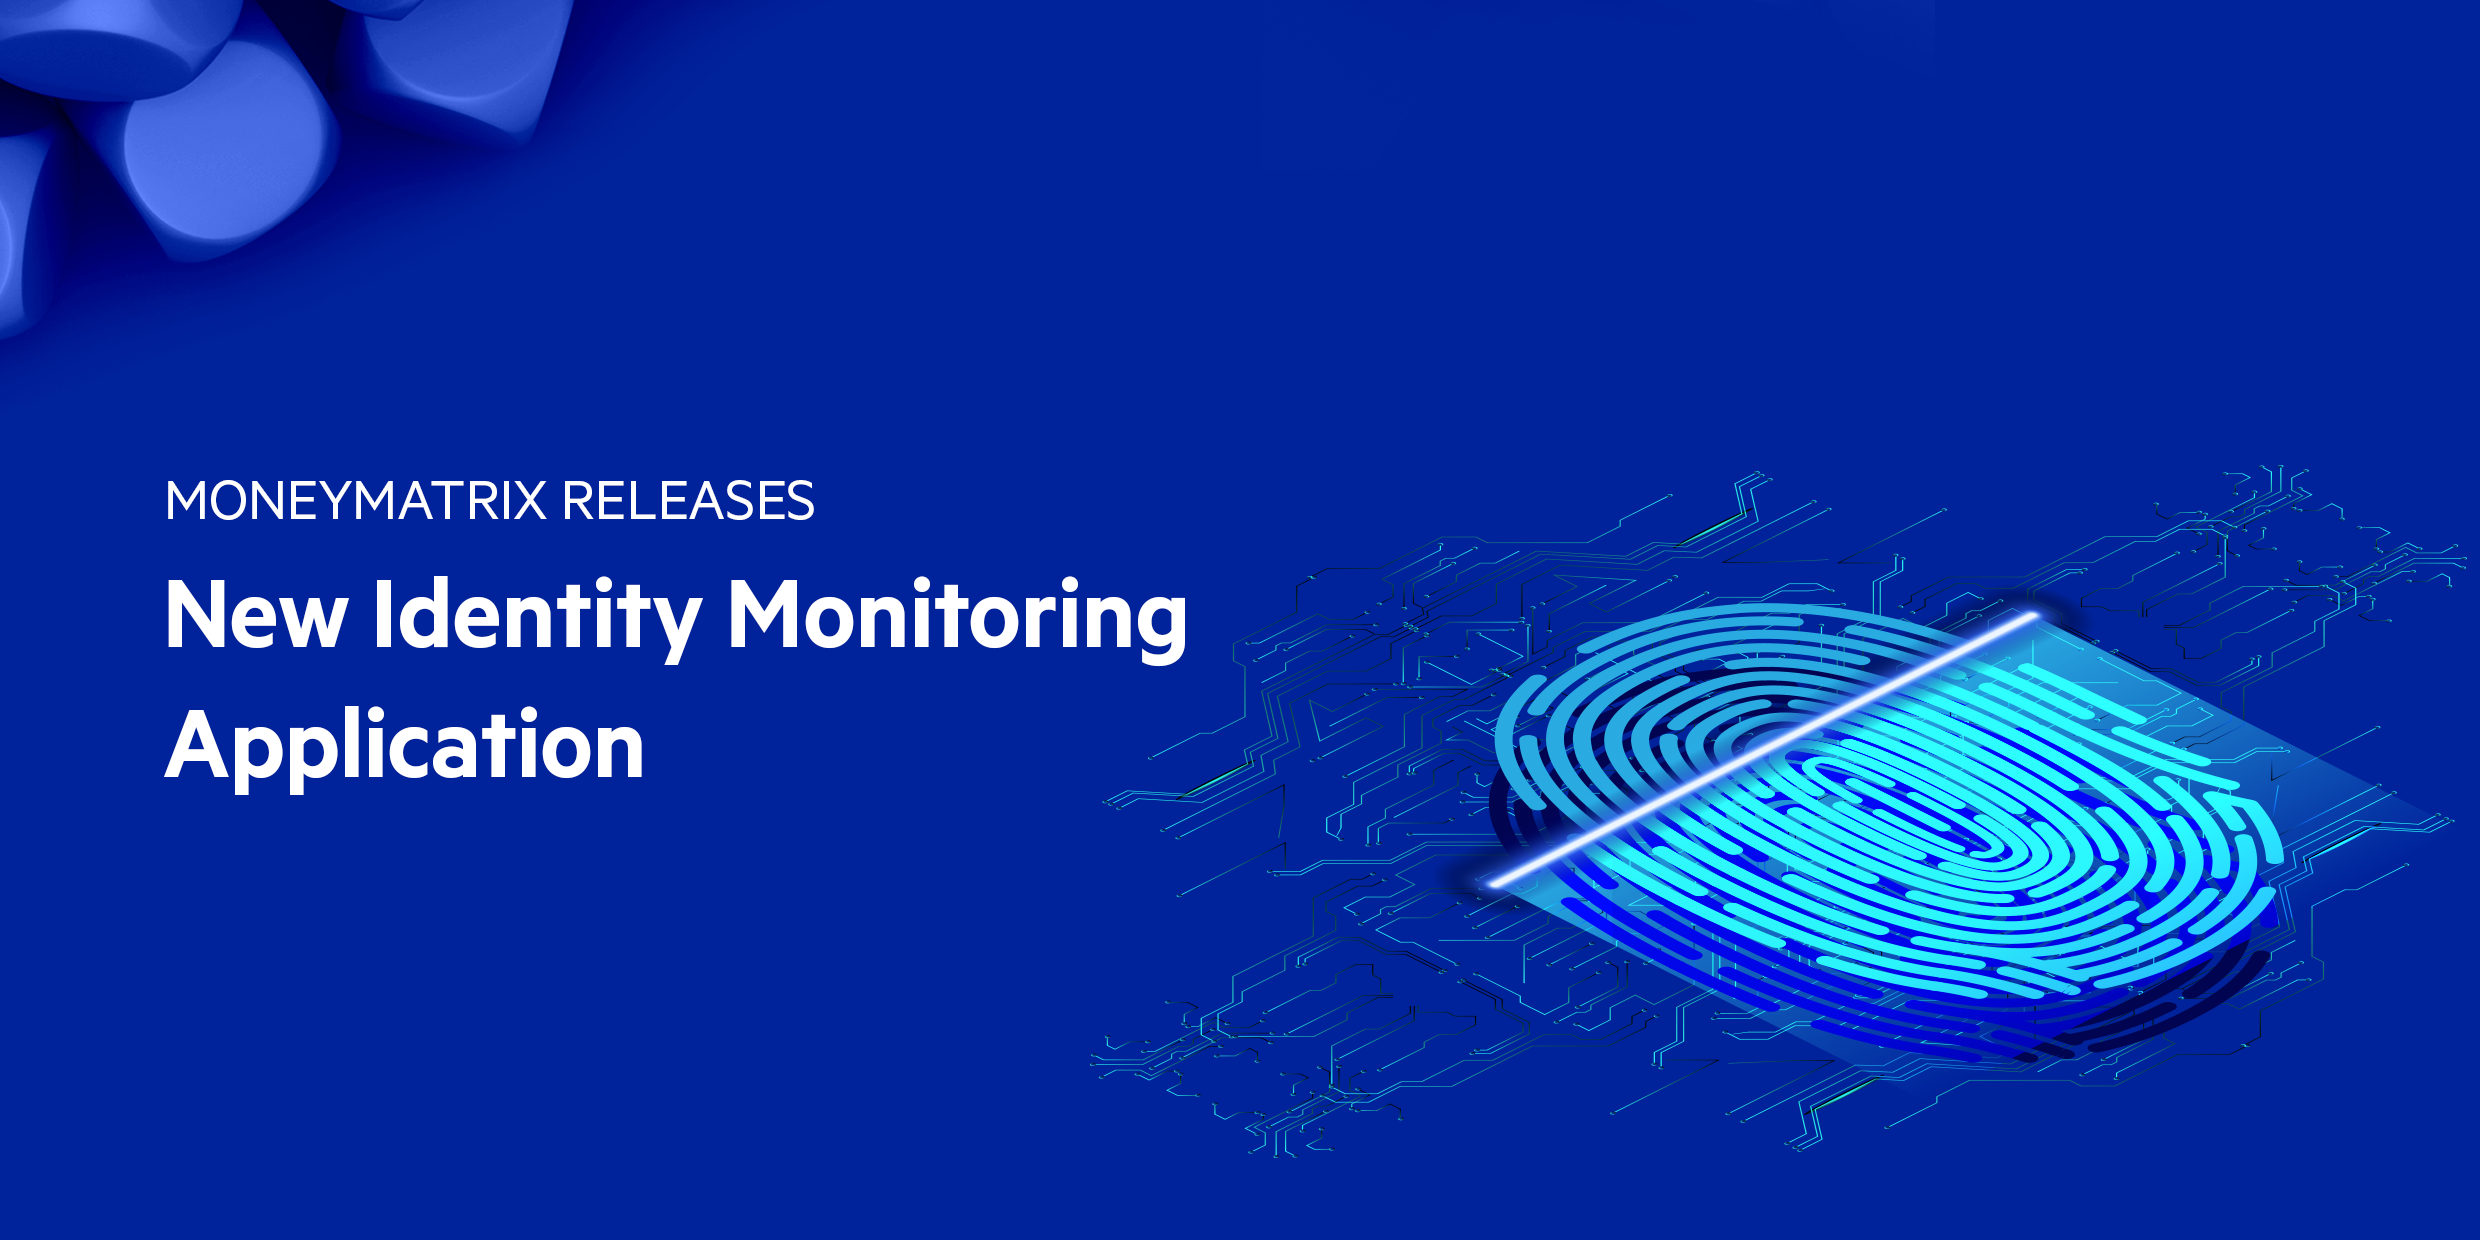 MoneyMatrix releases new Identity Monitoring Application